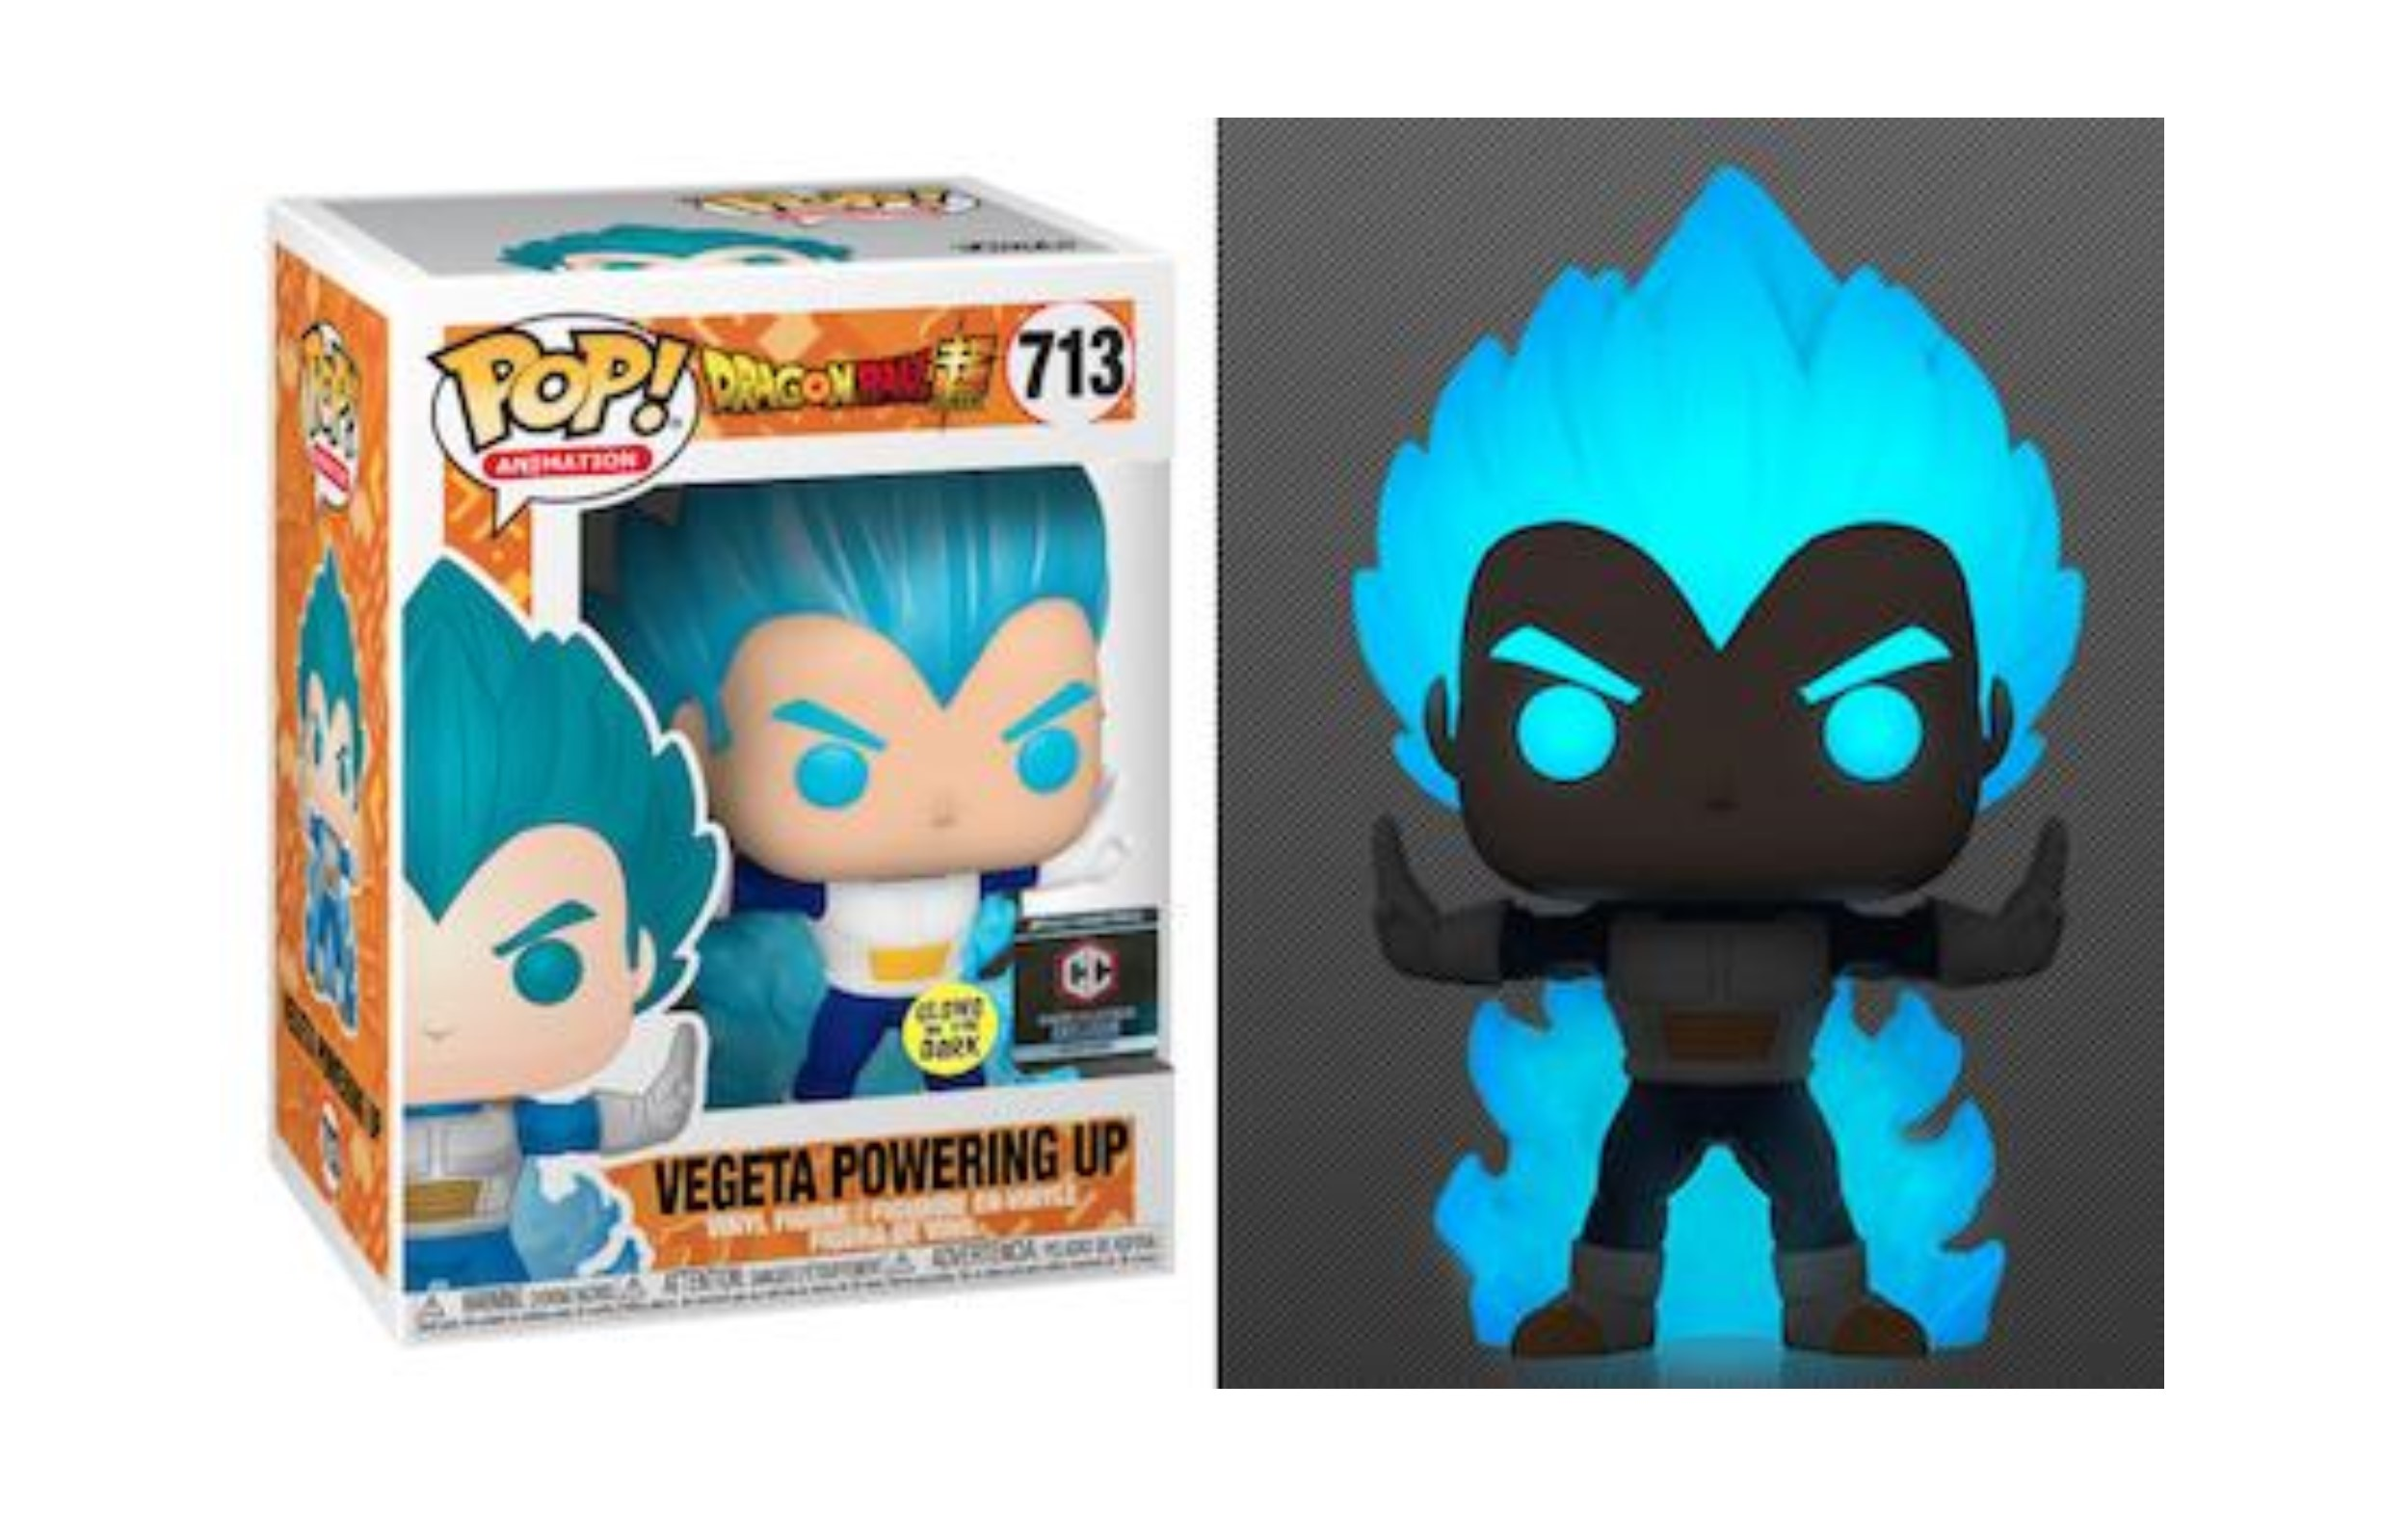 Dragonball Z Vegeta Powering Up Chalice GITD 713 Funko POP Vinyl Figure